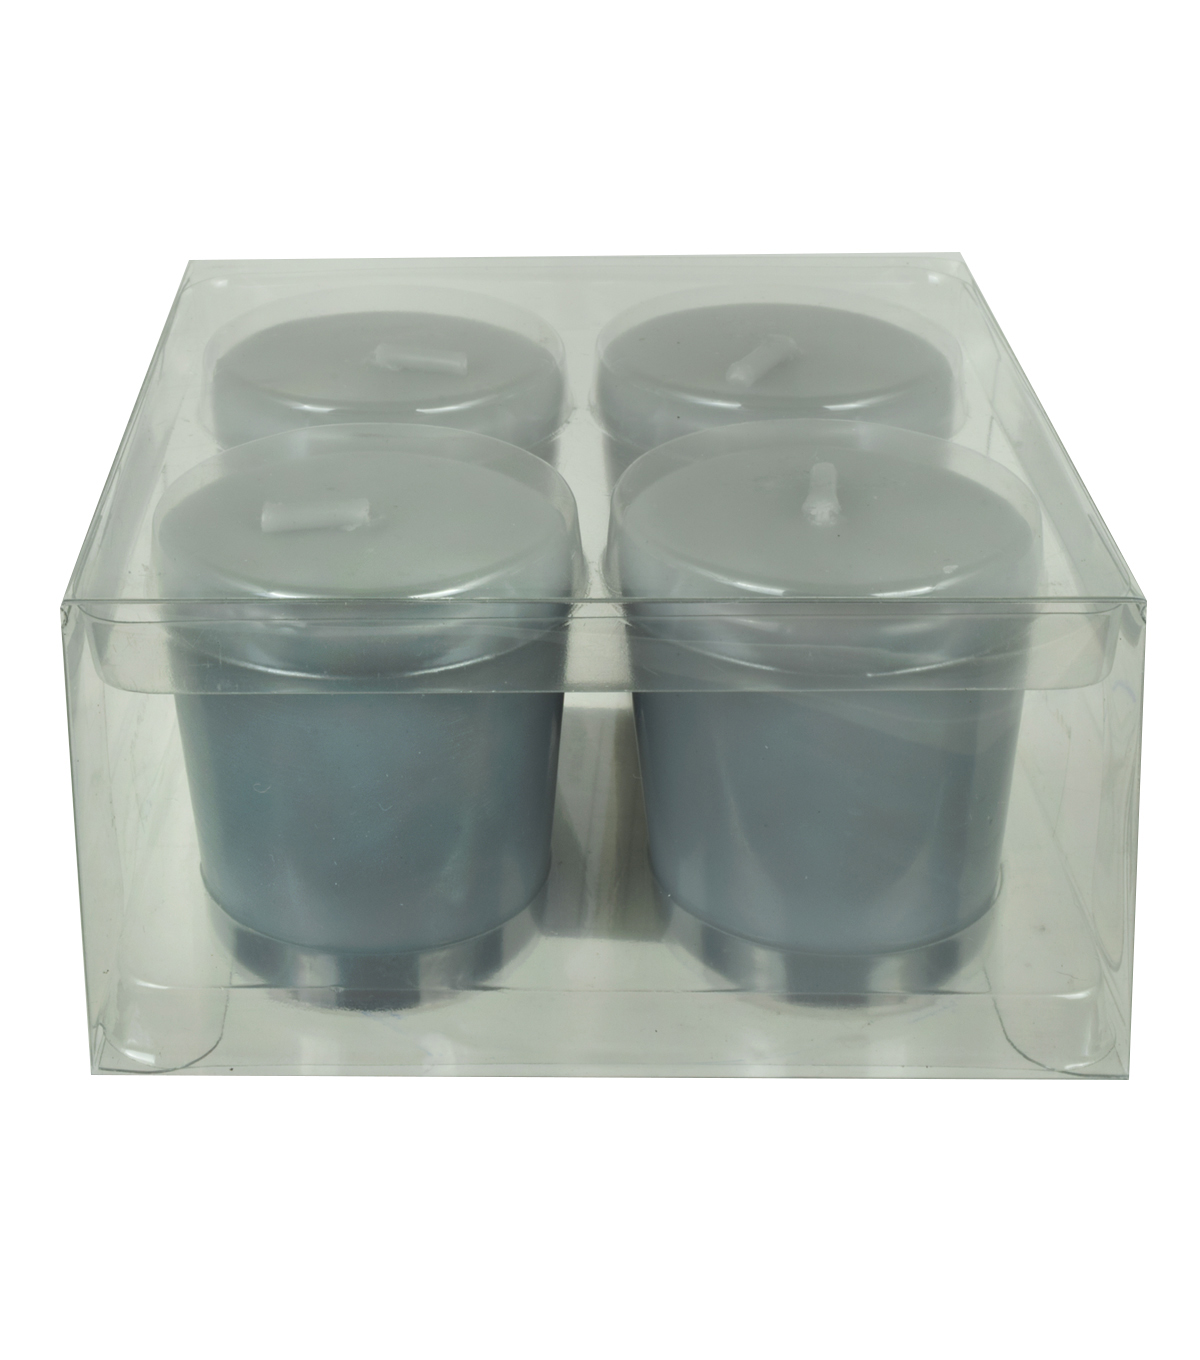 Hudson 43 Candle & Light 4 pk Votive Candles-Jadeite